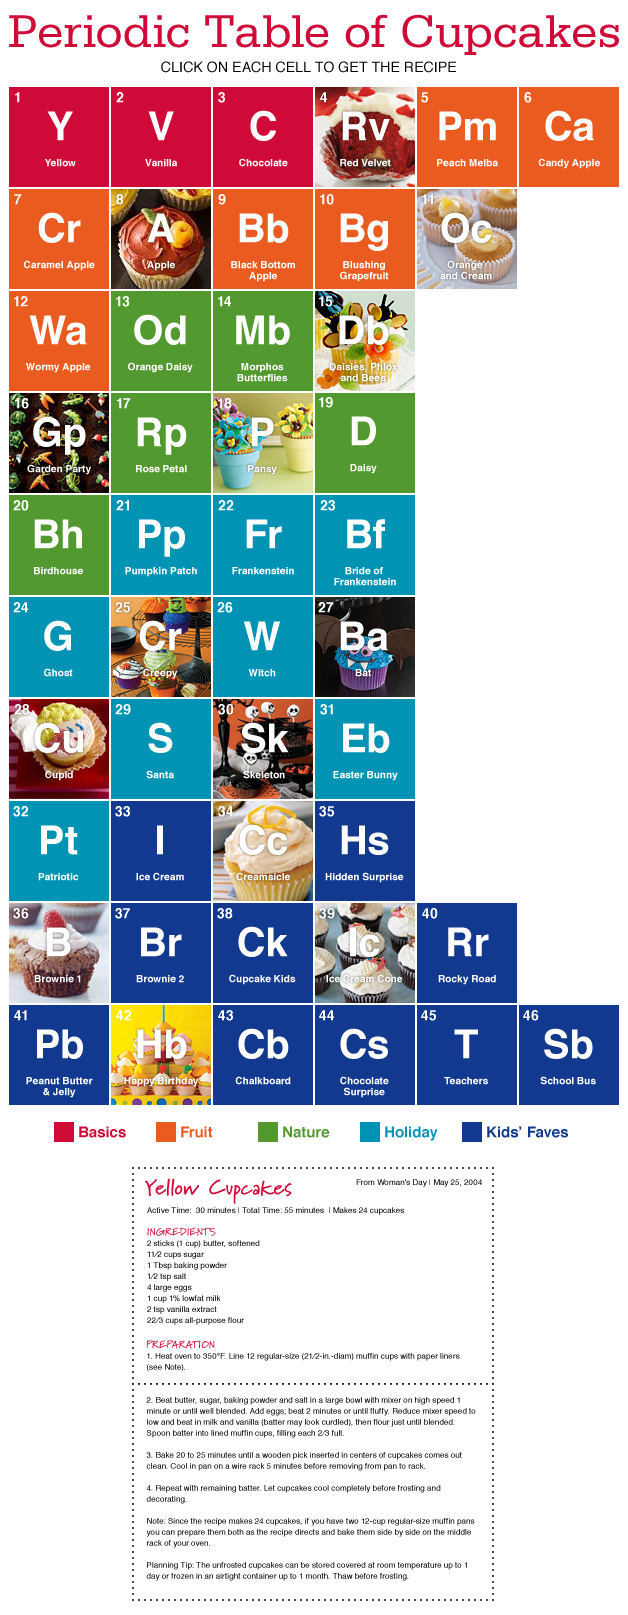 Periodic Table of Cupcakes!